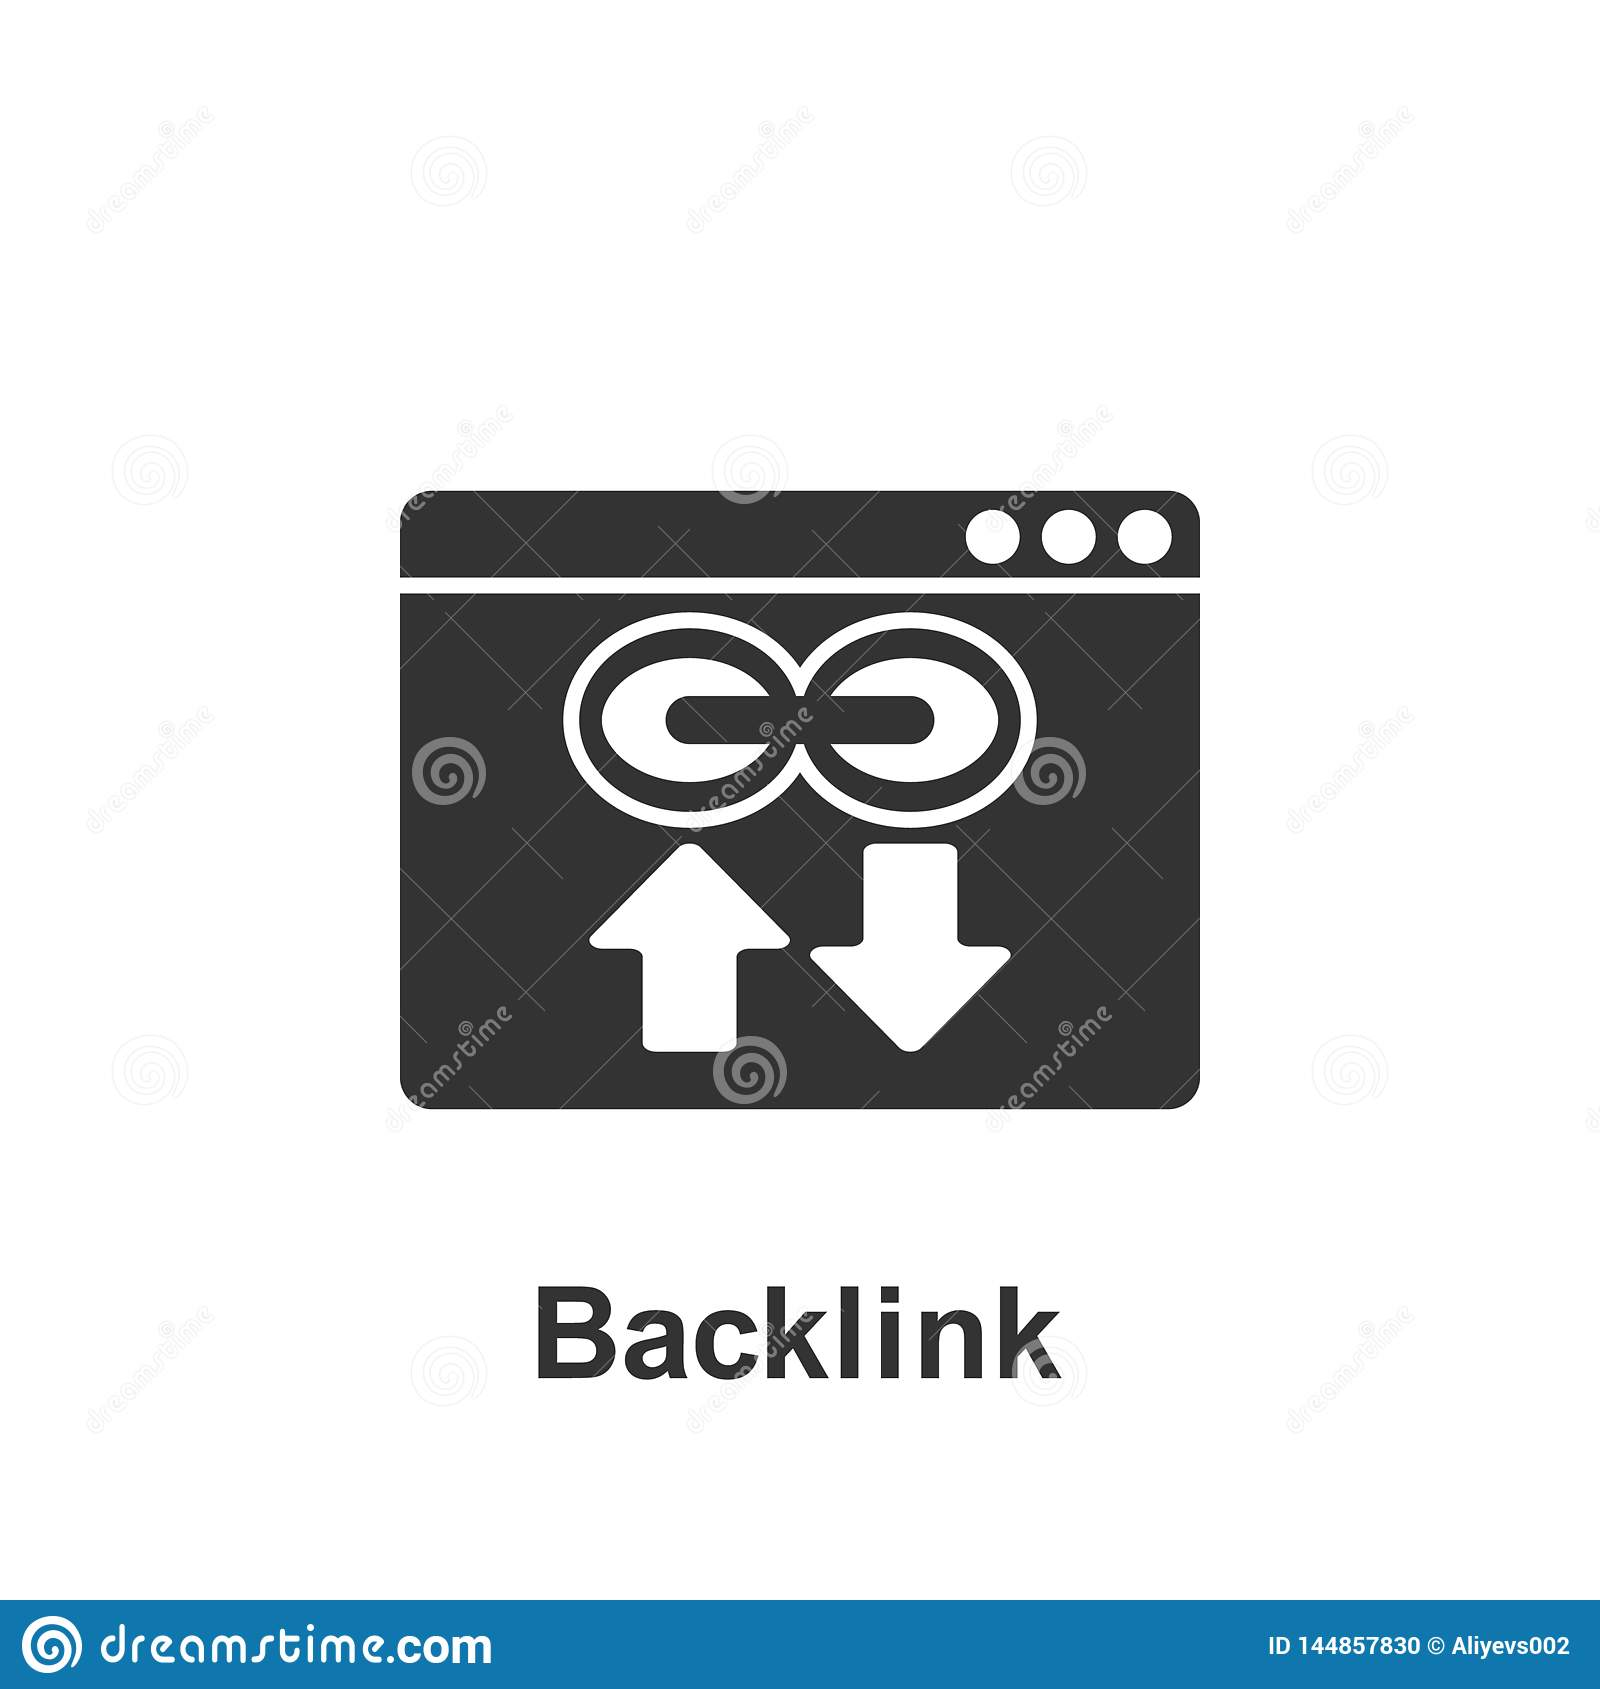 Online marketing, backlink icon. Element of online marketing icon. Premium quality graphic design icon. Signs and symbols